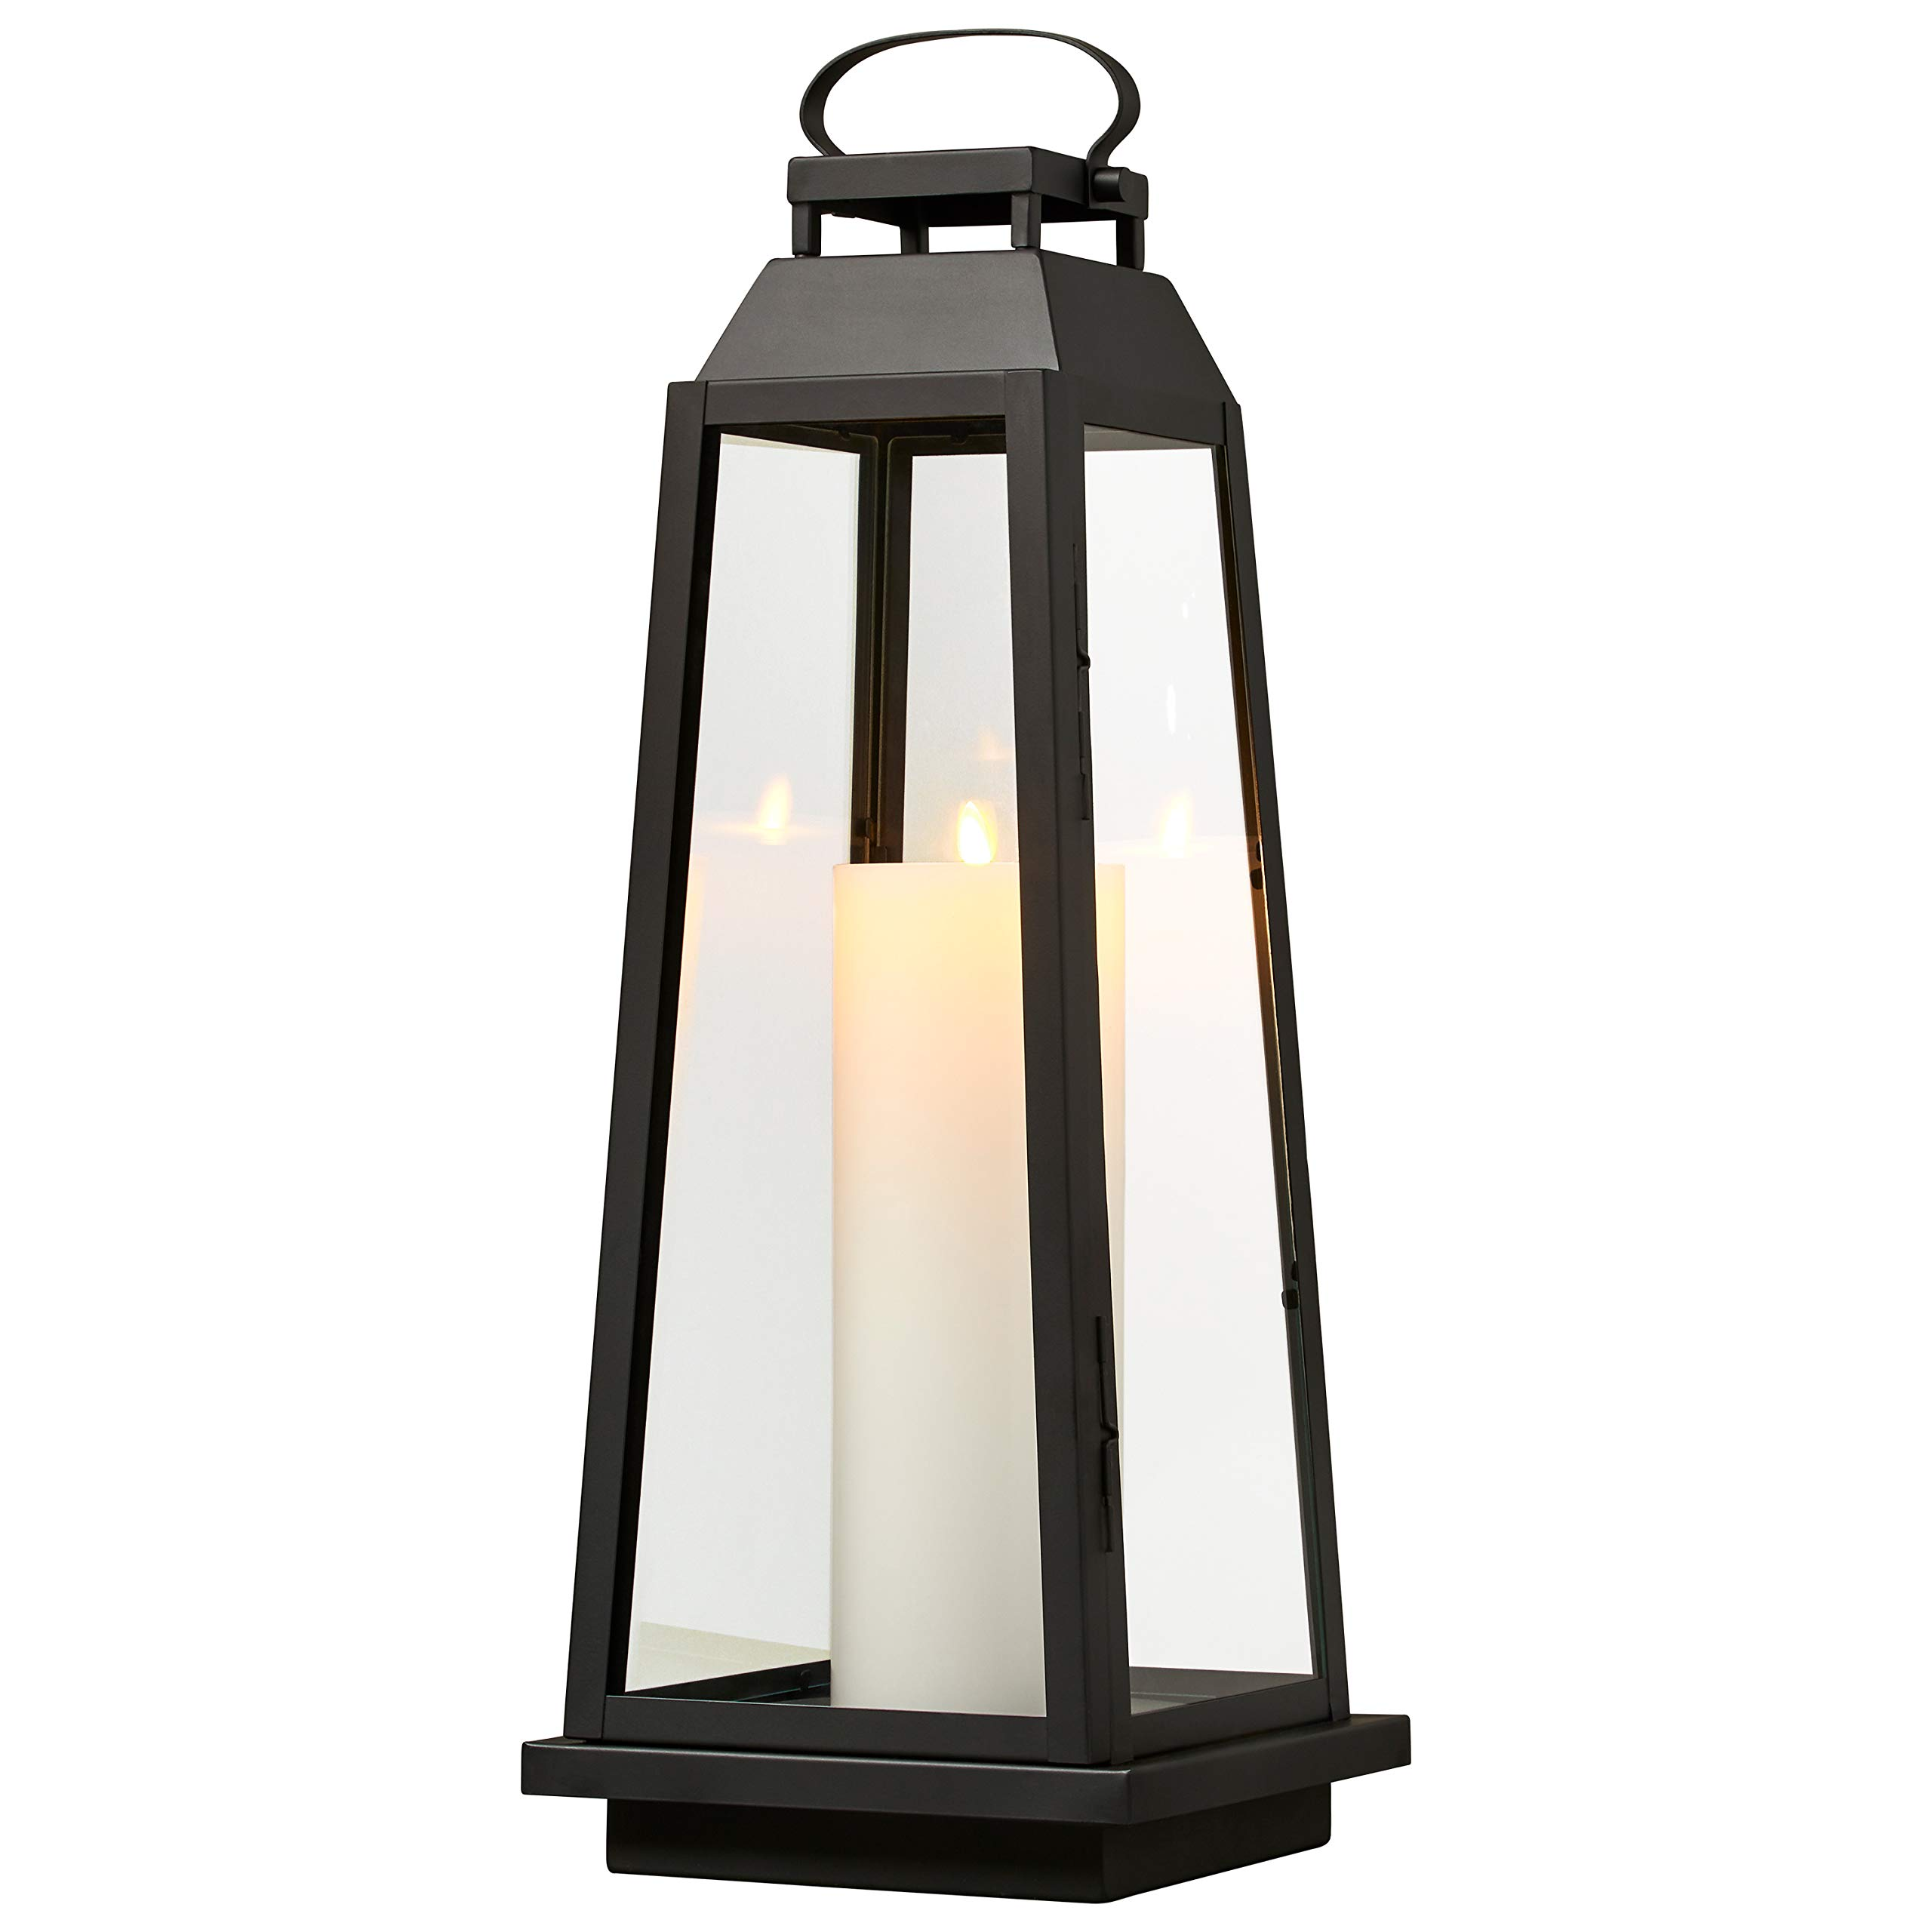 Stone & Beam Modern Traditional Decorative Metal and Glass Lantern with Candle, 25''H, Black, For Indoor Outdoor Use by Stone & Beam (Image #4)